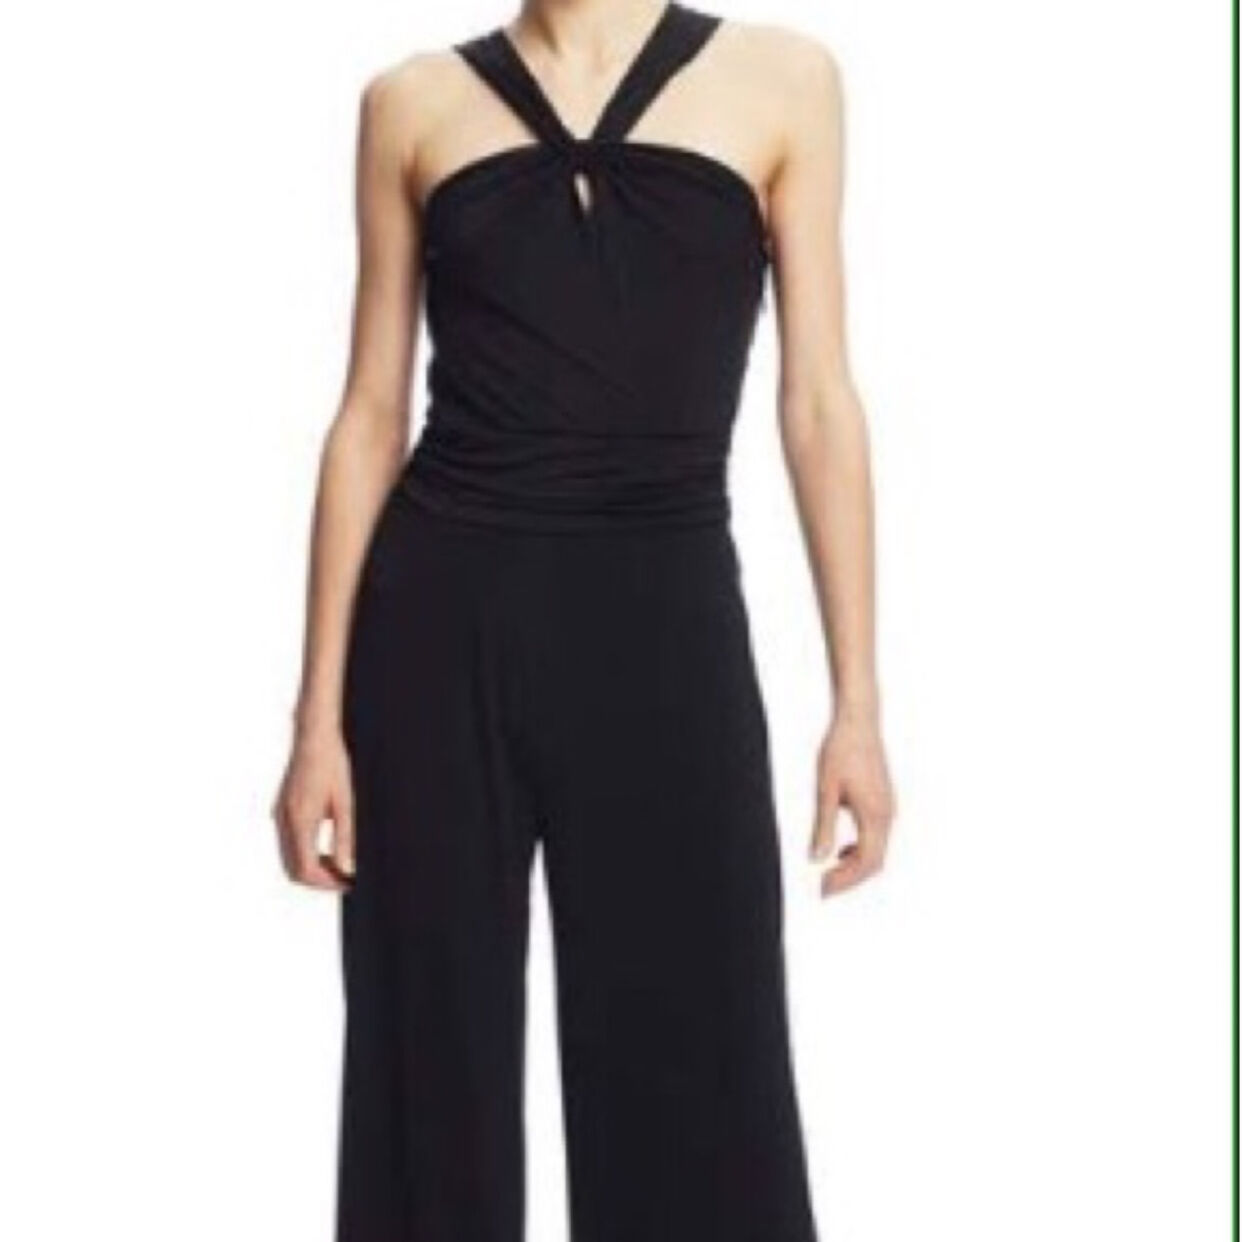 Womens' gorgeous dressy jumpsuit, size M, NWT